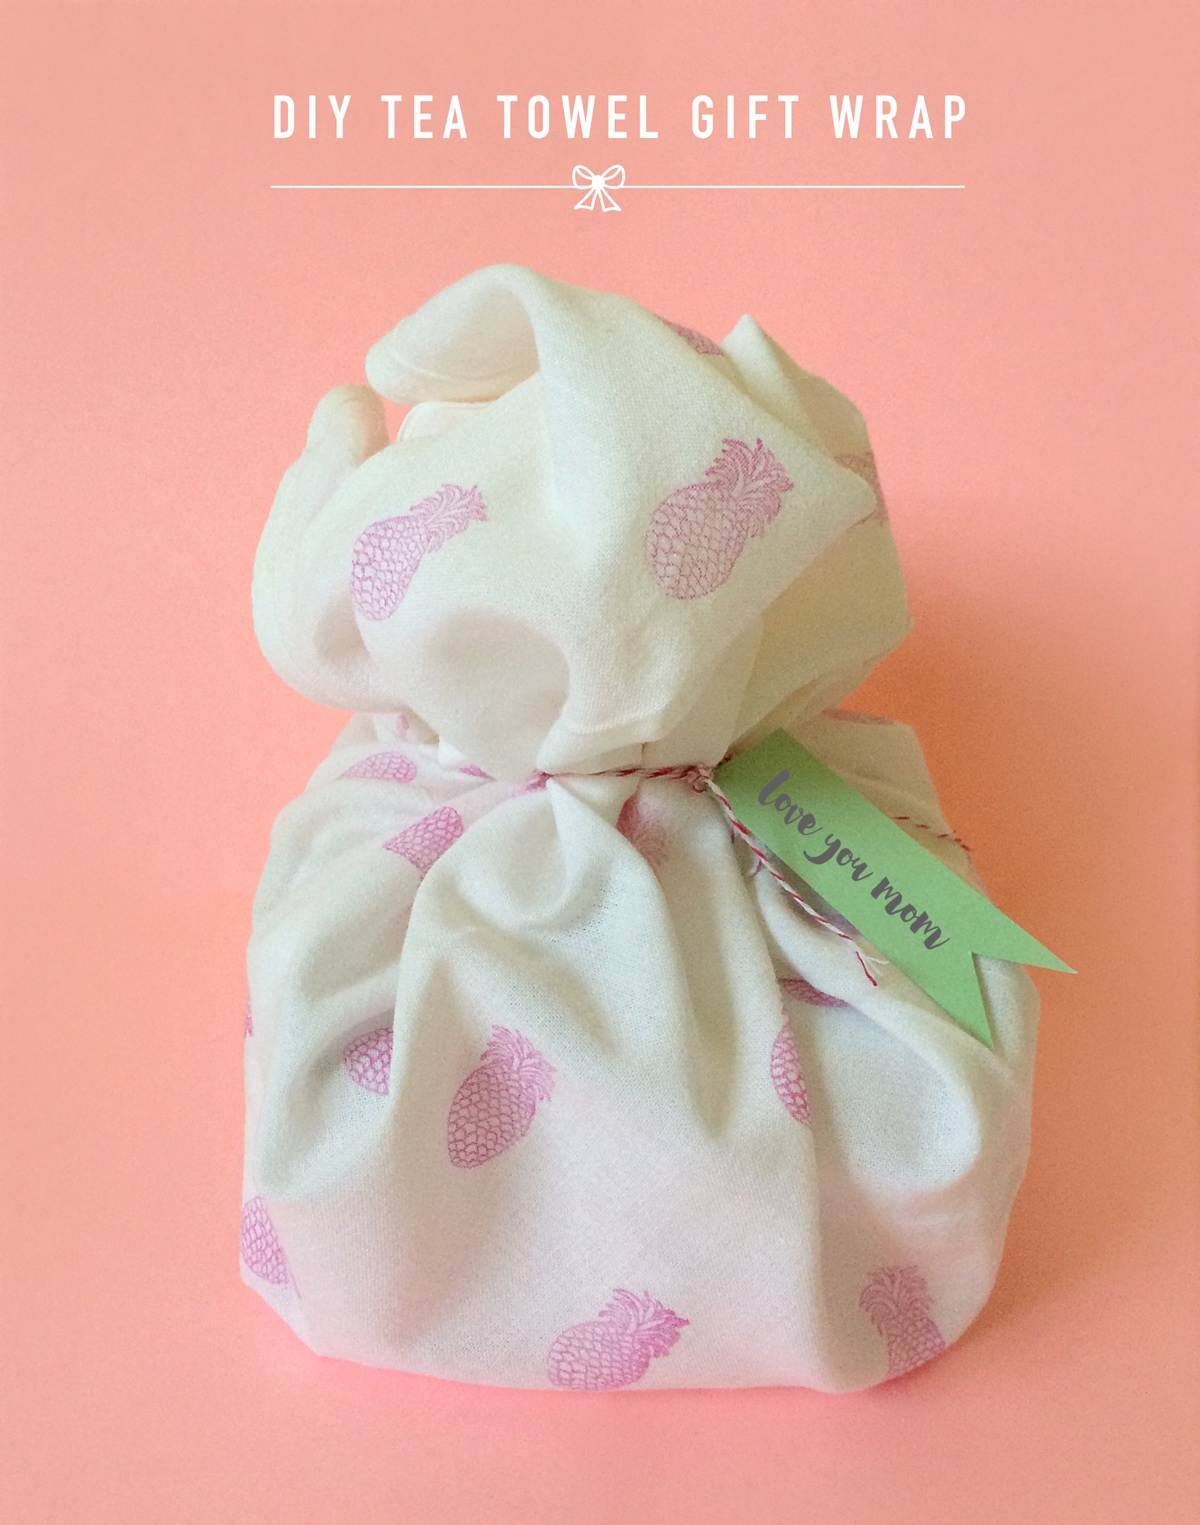 DIY Pineapples Tea Towel Gift Wrap